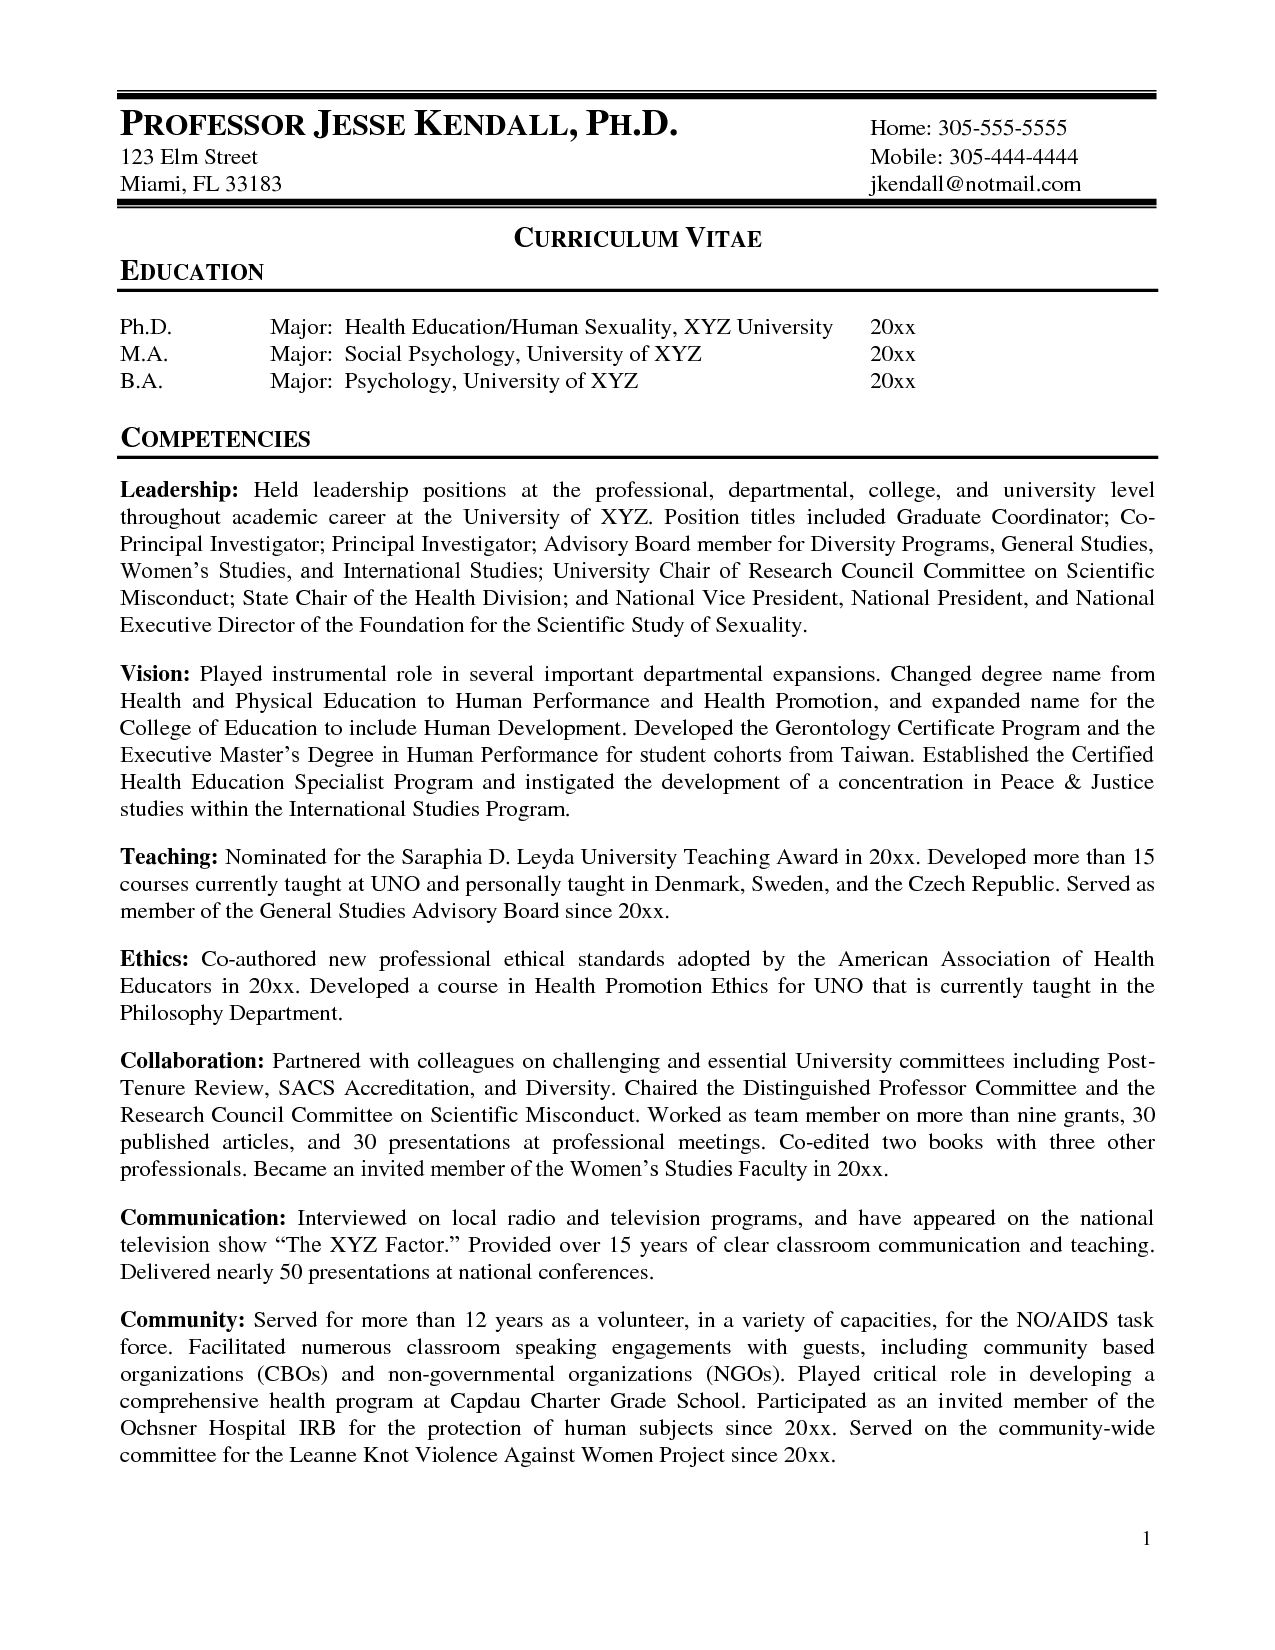 Resume Format For Zoology Lecturer Resume Format College